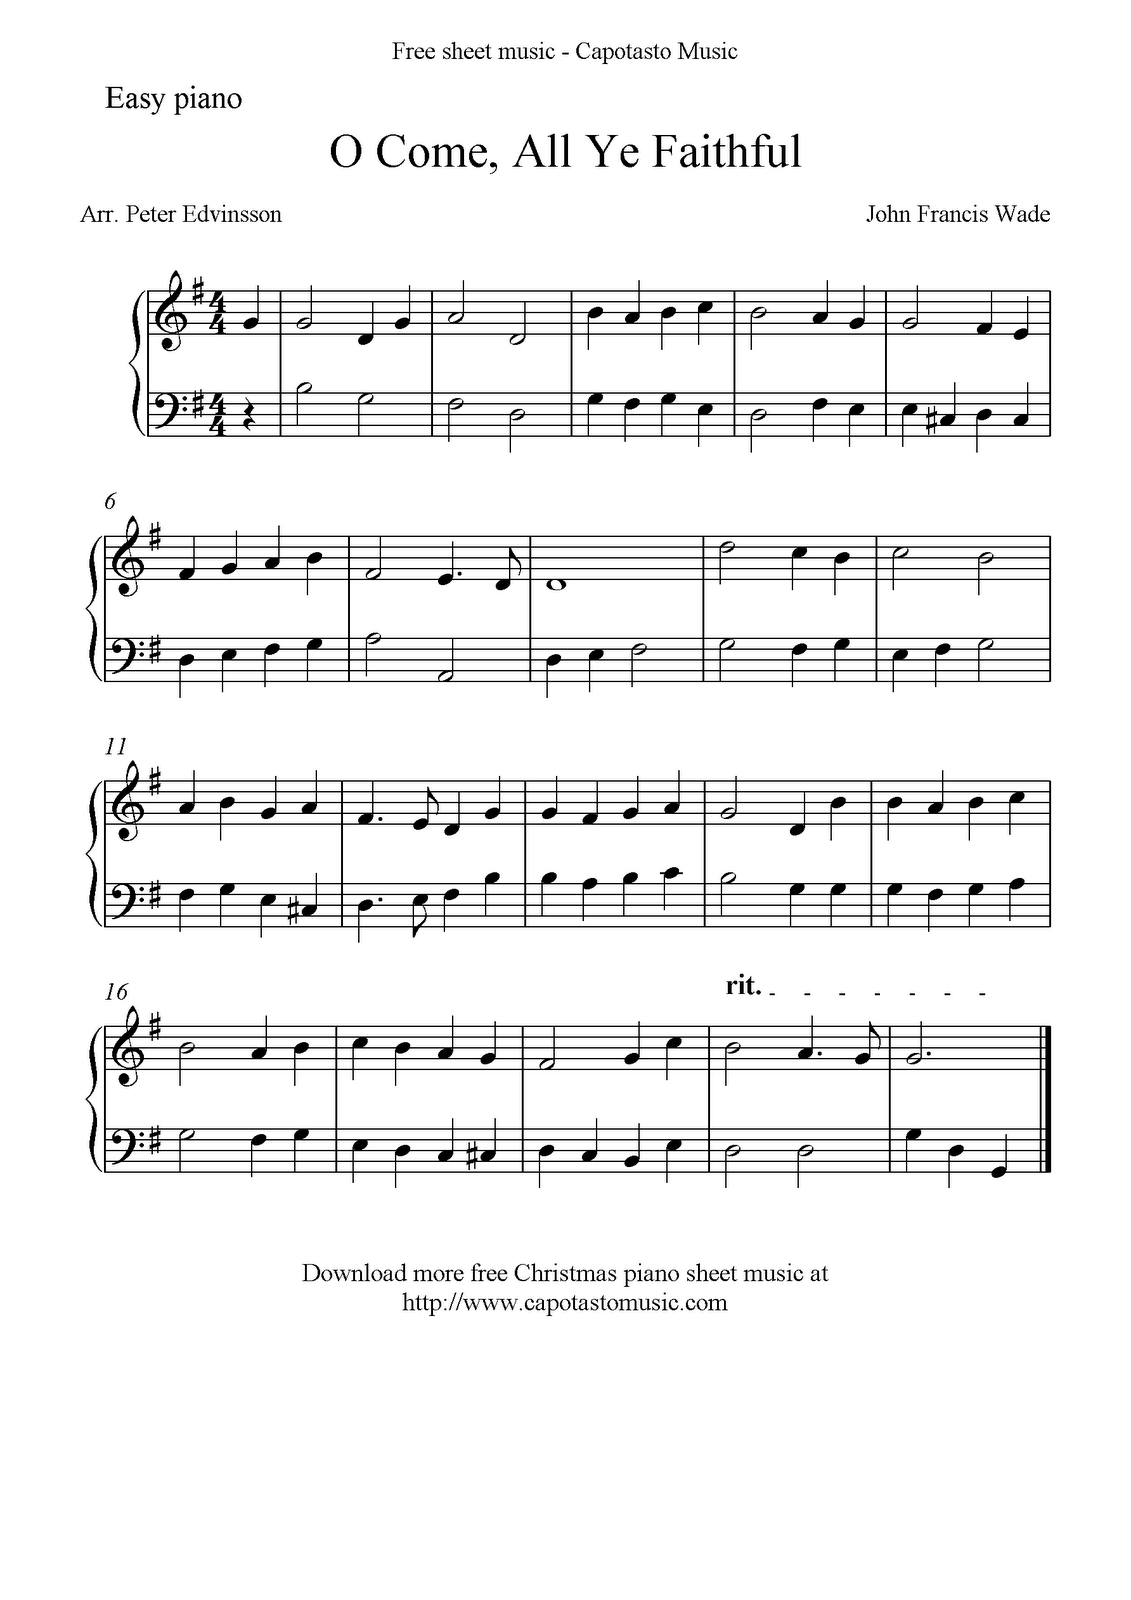 Free Easy Christmas Piano Sheet Music, O Come, All Ye Faithful - Christmas Piano Sheet Music Easy Free Printable